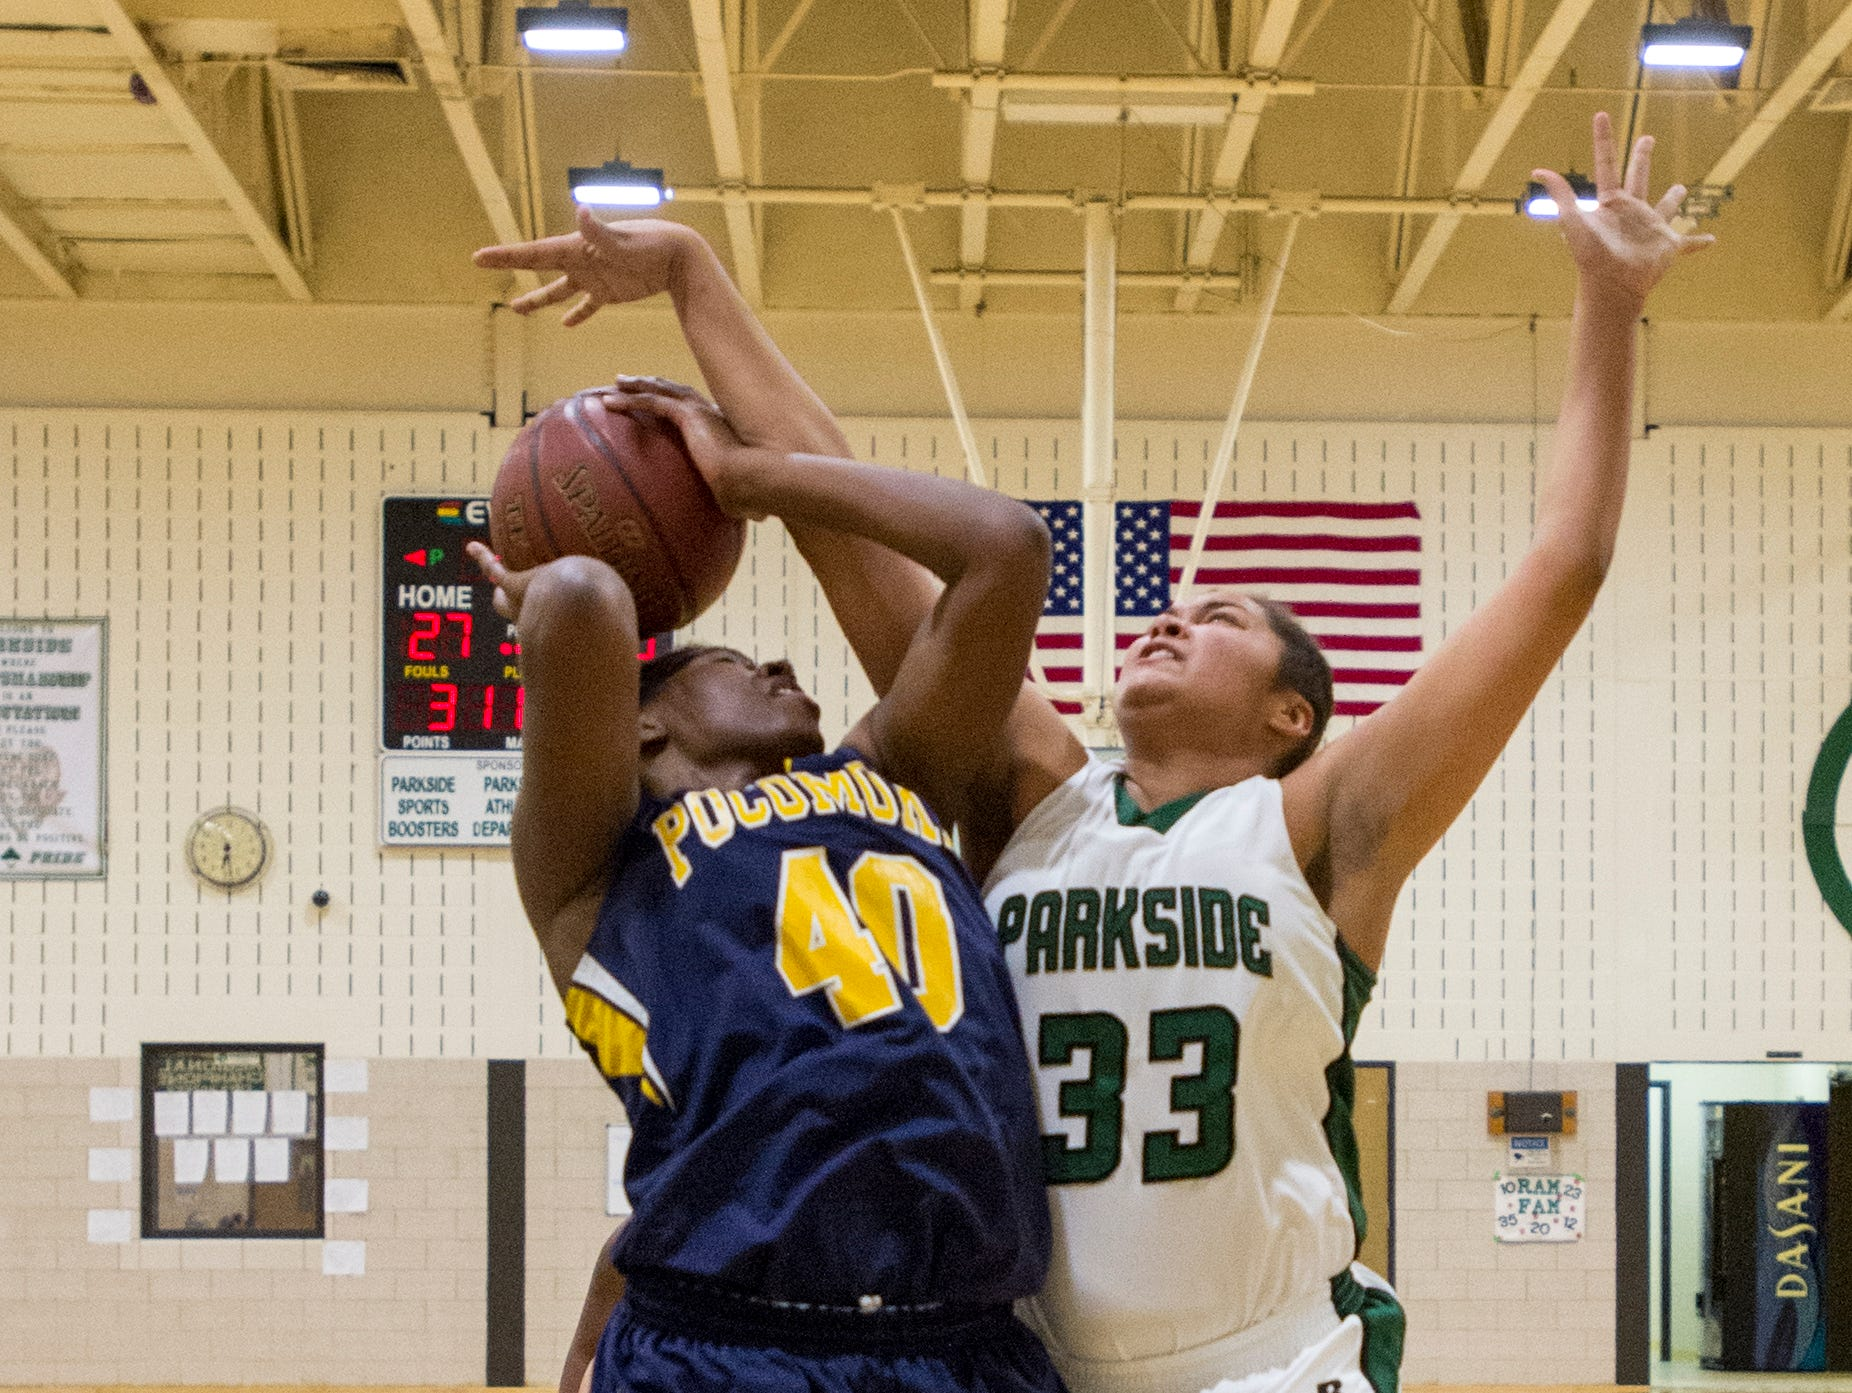 Parkside's Kayla Handy (33) was named the female athlete of the week for the period of Jan. 19-Jan. 24.